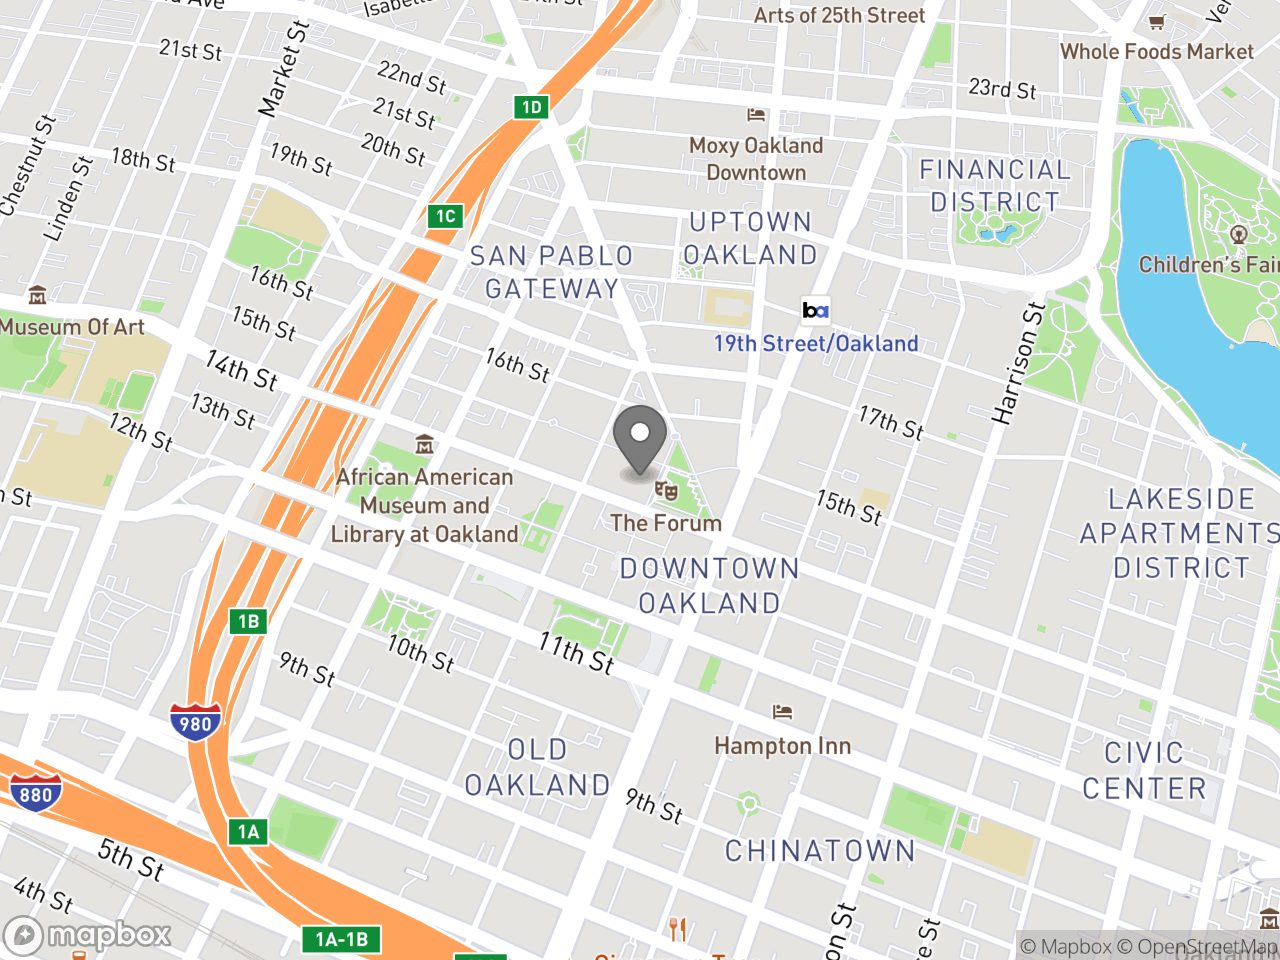 Map location for City Clerk, located at 1 Frank H Ogawa Plaza in Oakland, CA 94612